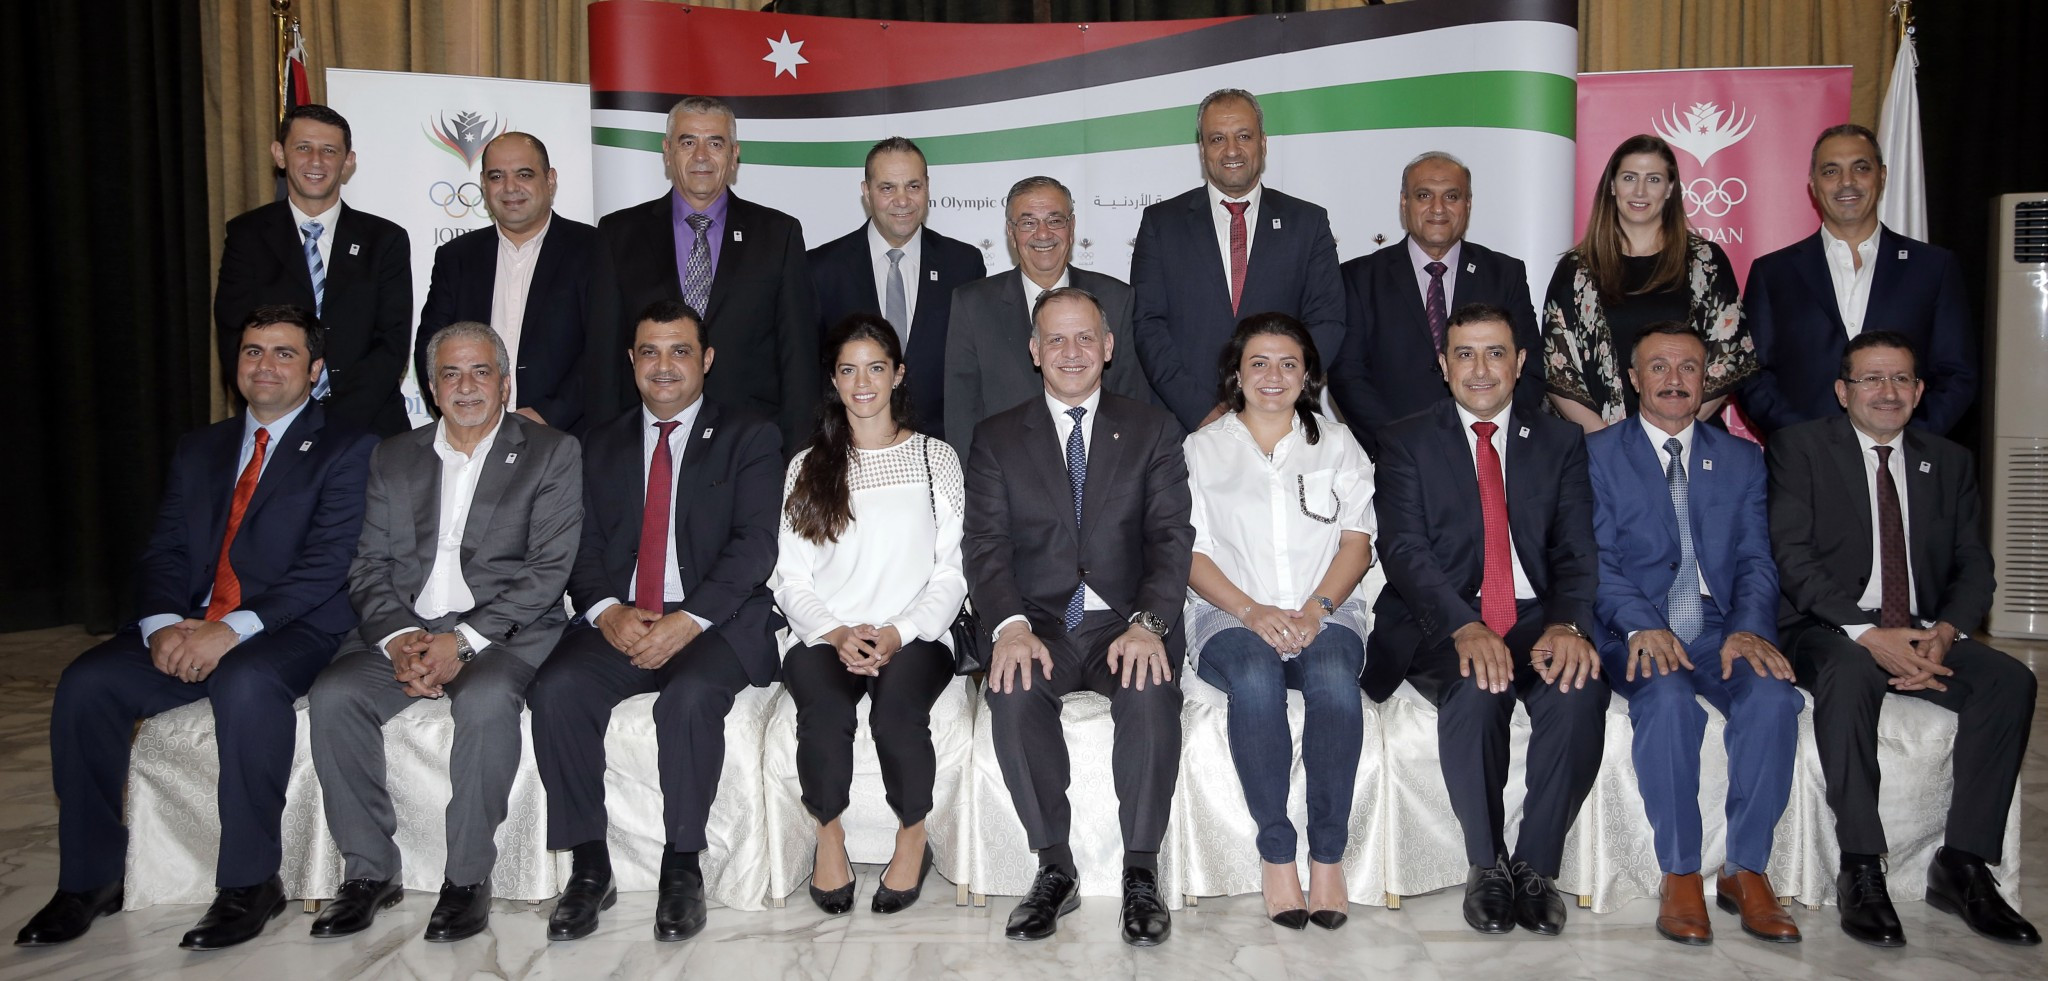 Prince Feisal Al Hussein has been re-elected as President of the Jordan Olympic Committee, along with a new Board ©JOC